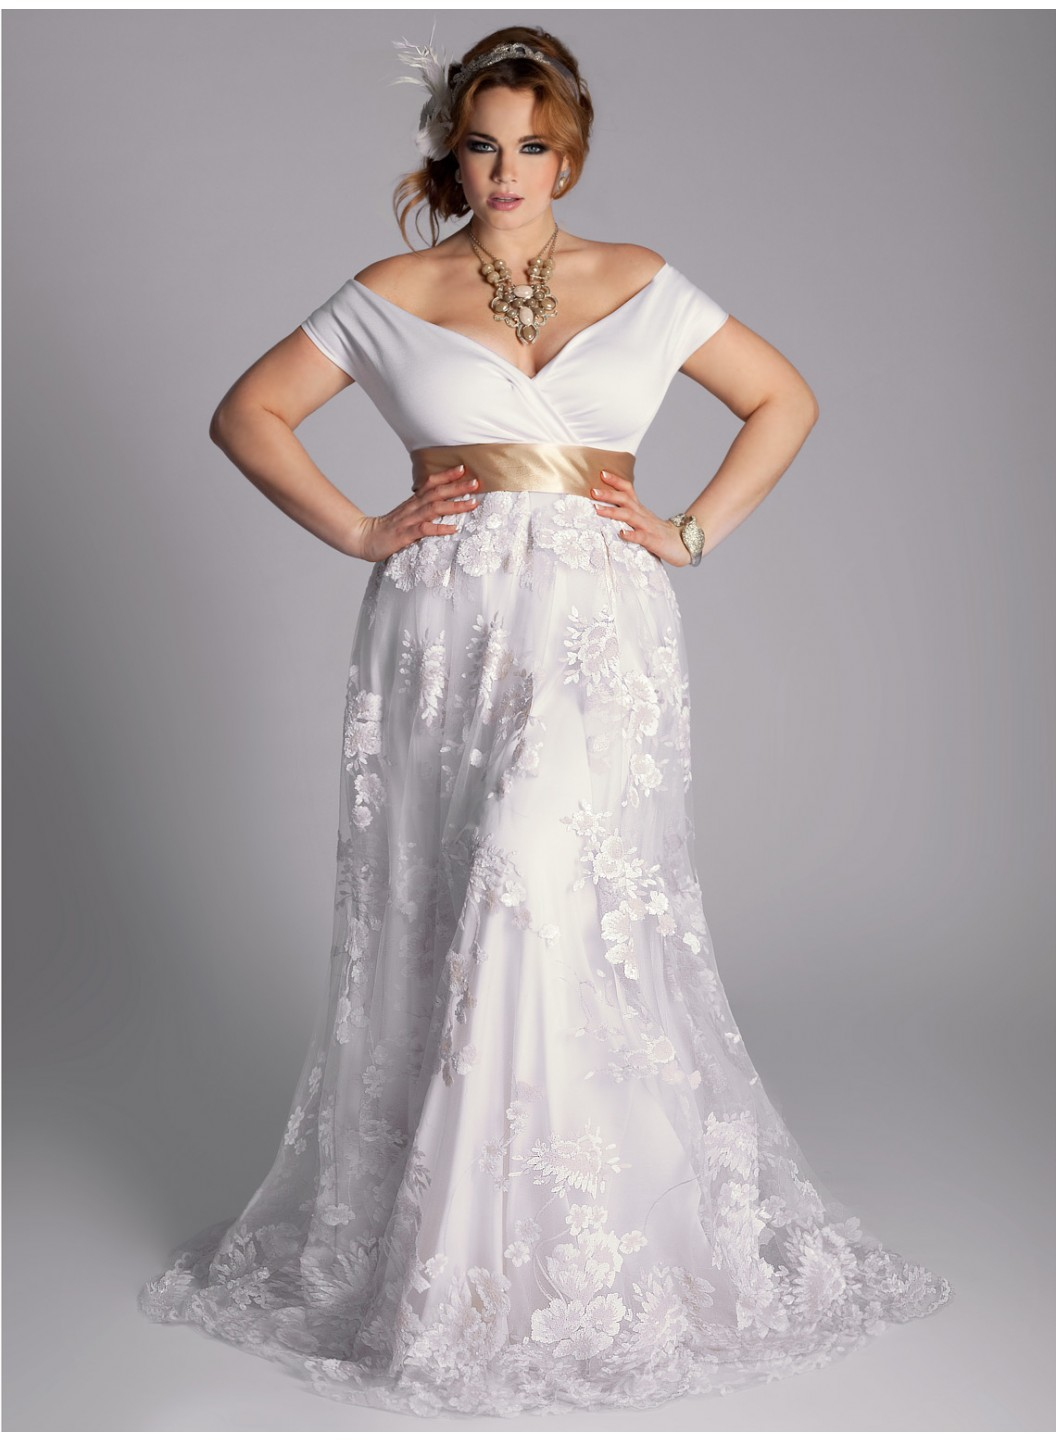 Ten plus size lace wedding dresses that you will love for Plus size shapewear for wedding dresses